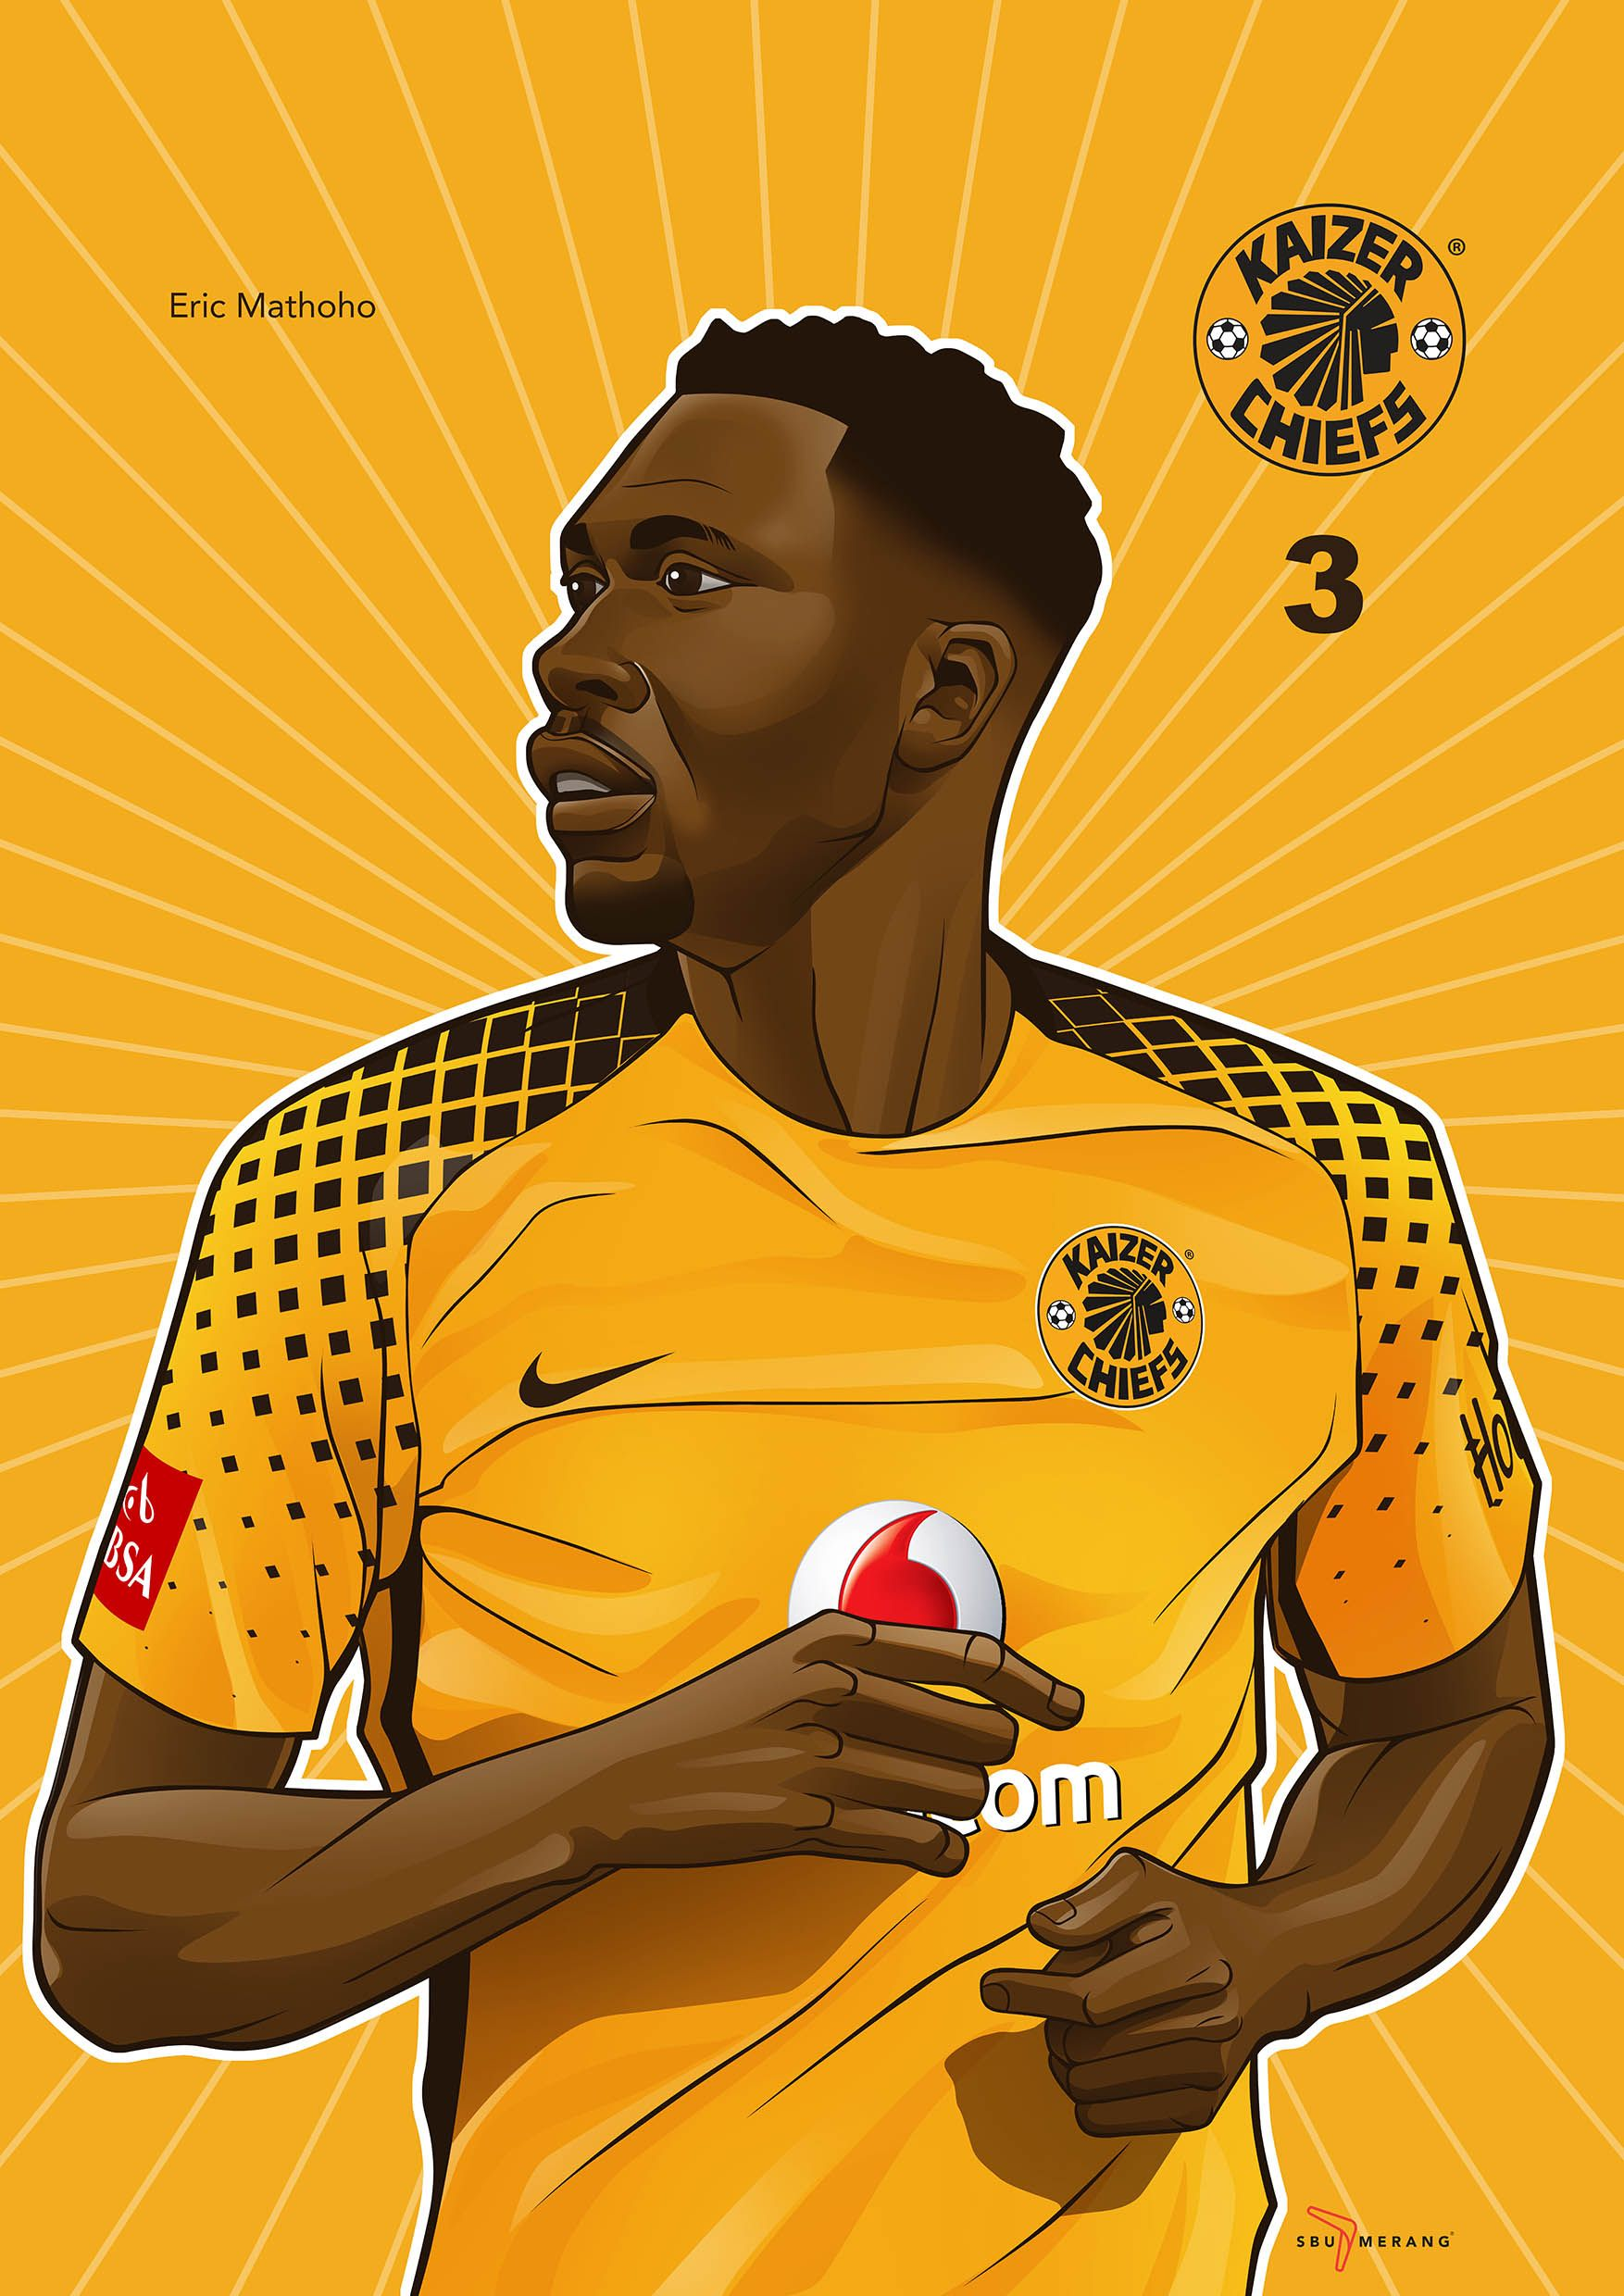 Iwisa Kaizer Chiefs Players Poster Collection Eric Mothoho  e62f5569c